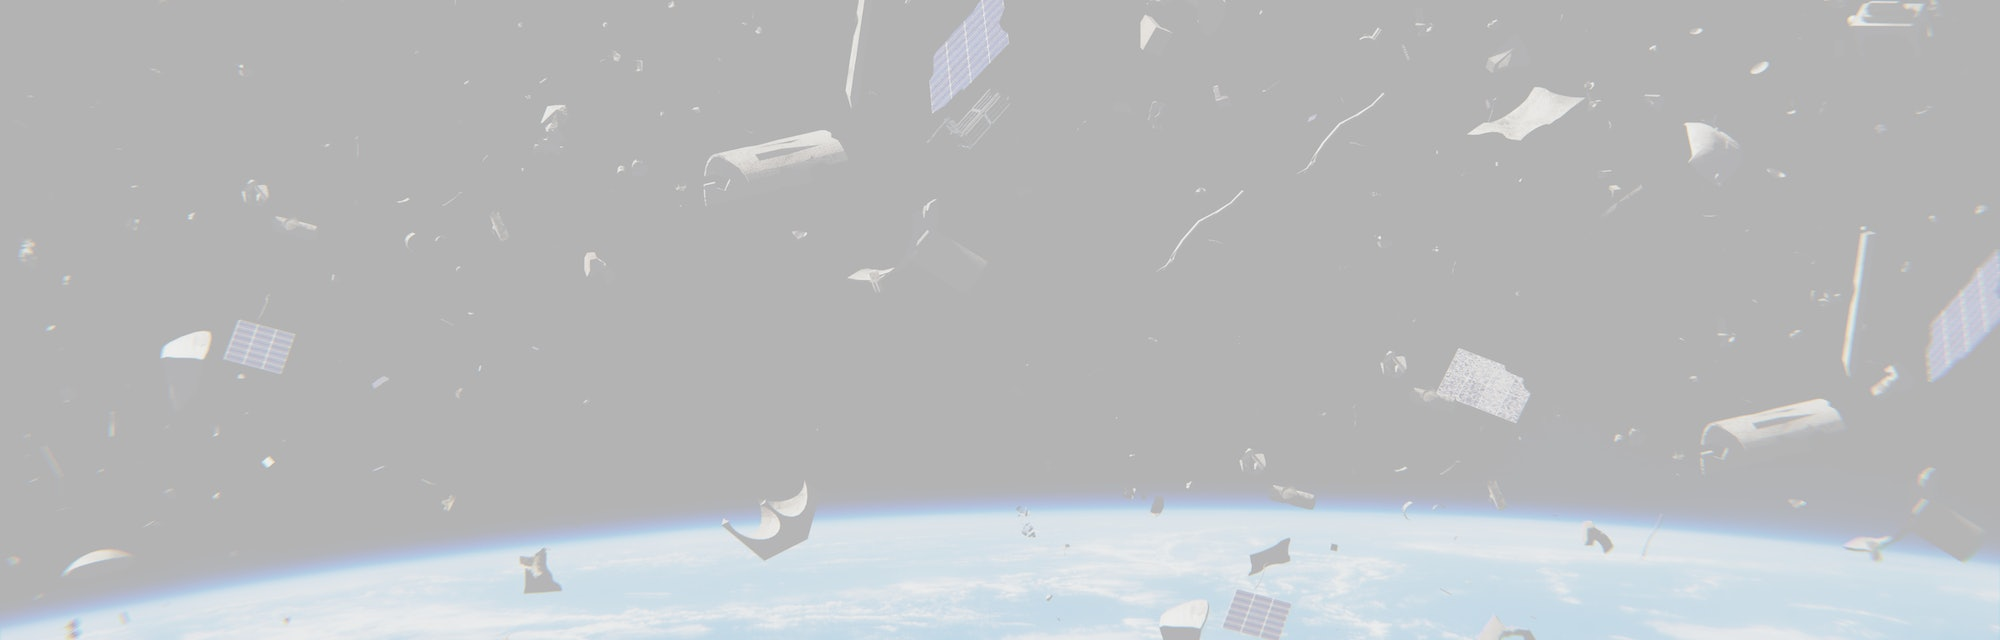 space debris in Earth orbit, dangerous junk orbiting around the blue planet (3d illustration, elements of this image are furnished by NASA)